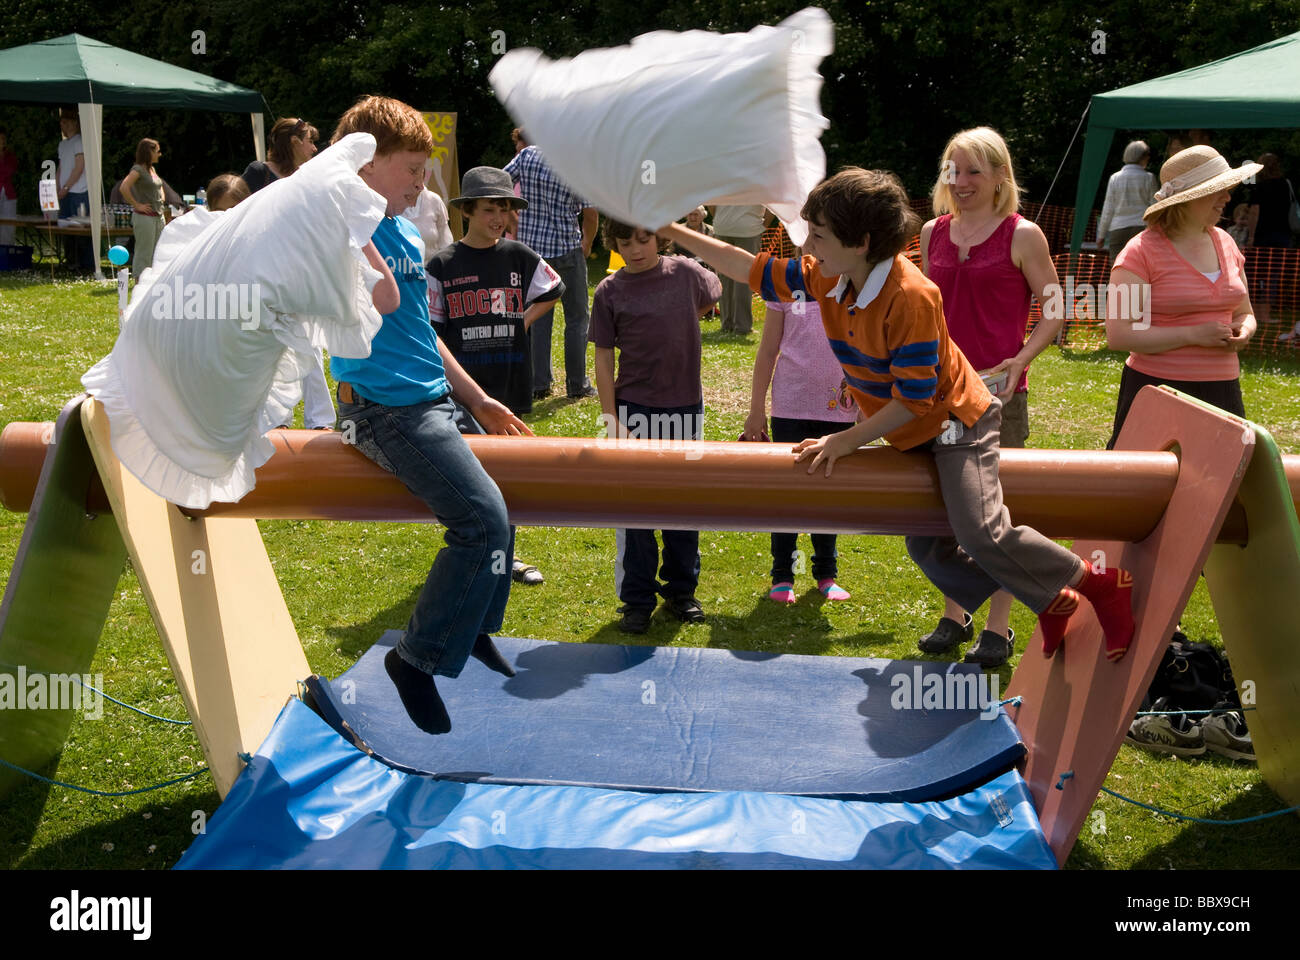 Kids Having A Pillow Fight On The Slippery Pole At A